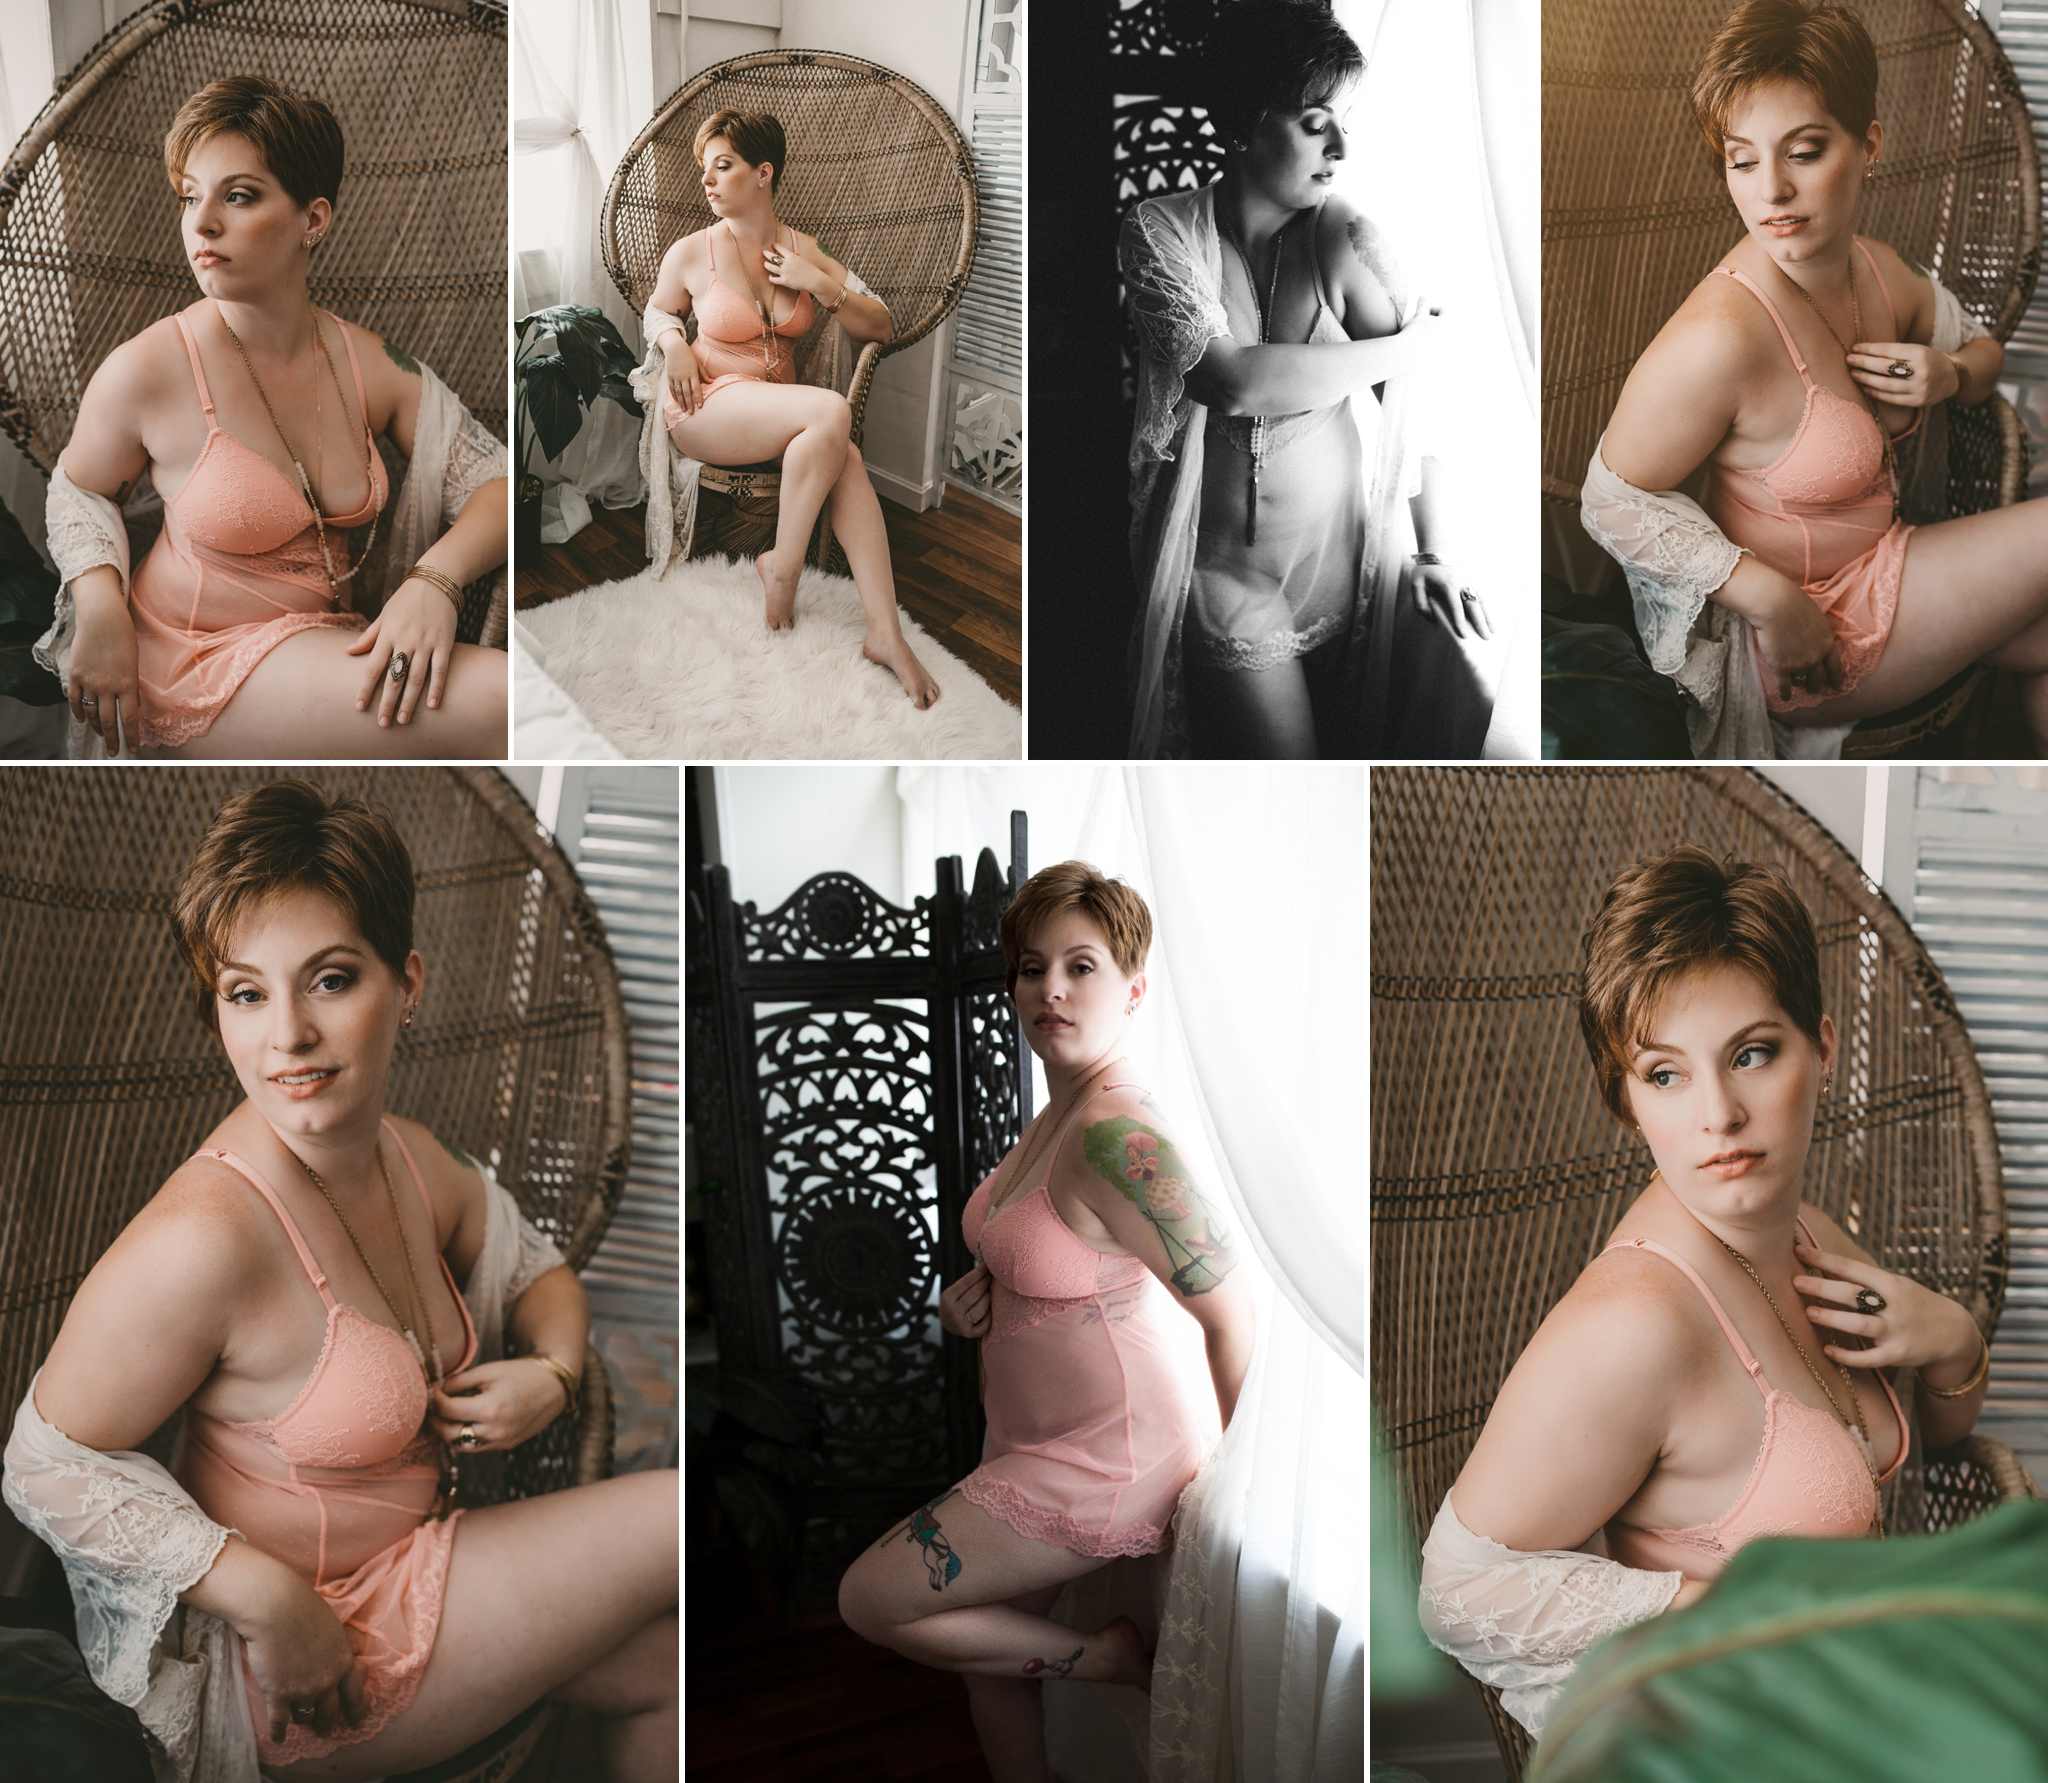 Emily Weston Collage 4.jpg